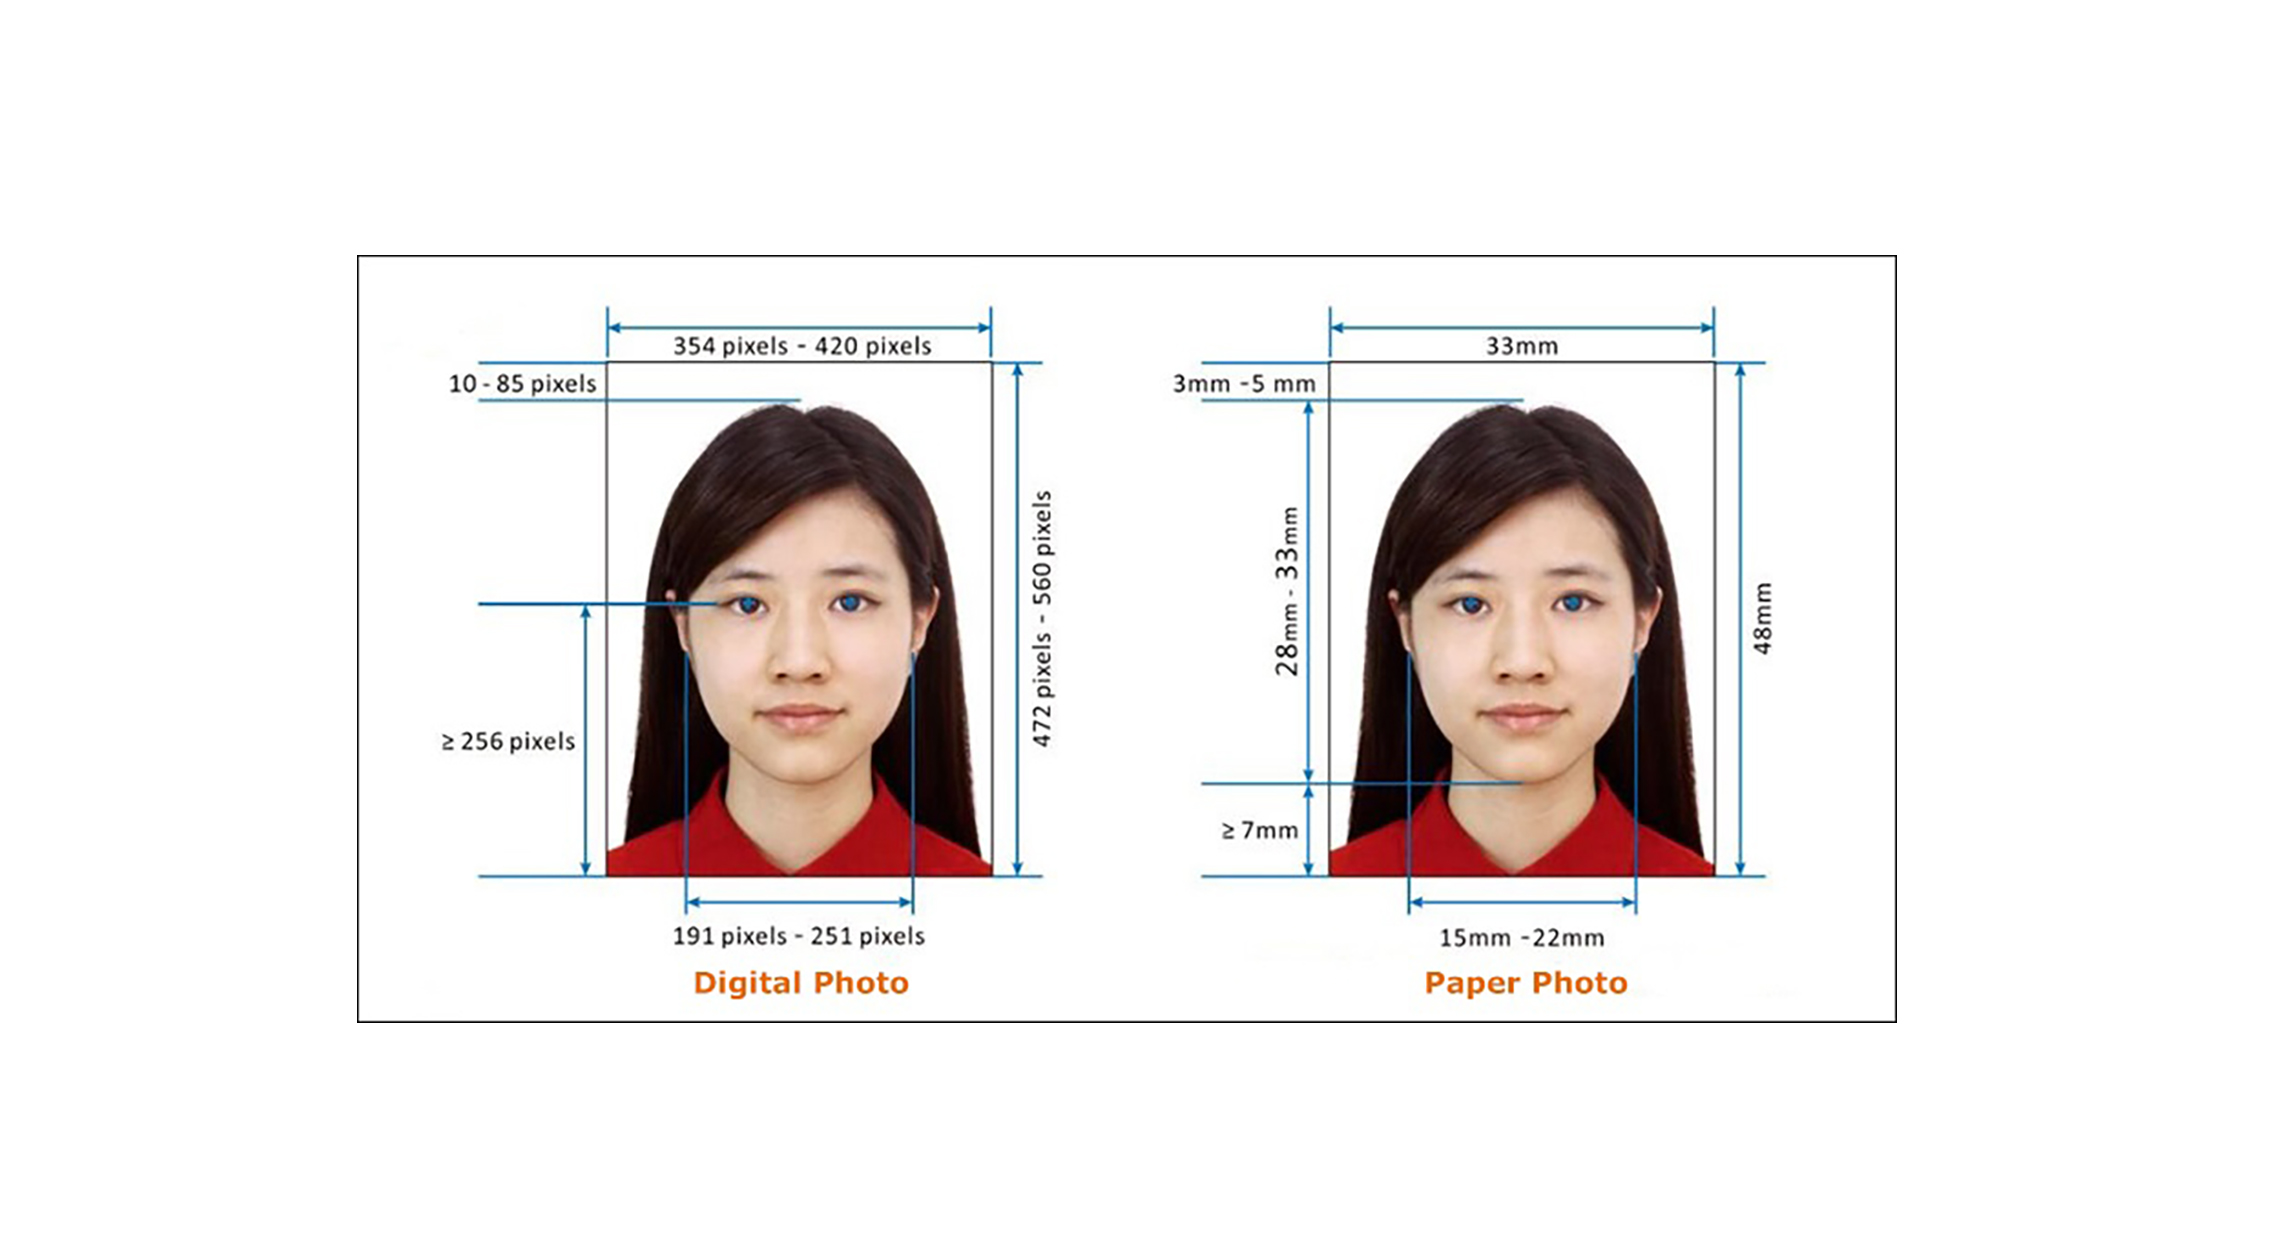 China visa photo requirements - Exigences relatives aux photos de visa pour la Chine.